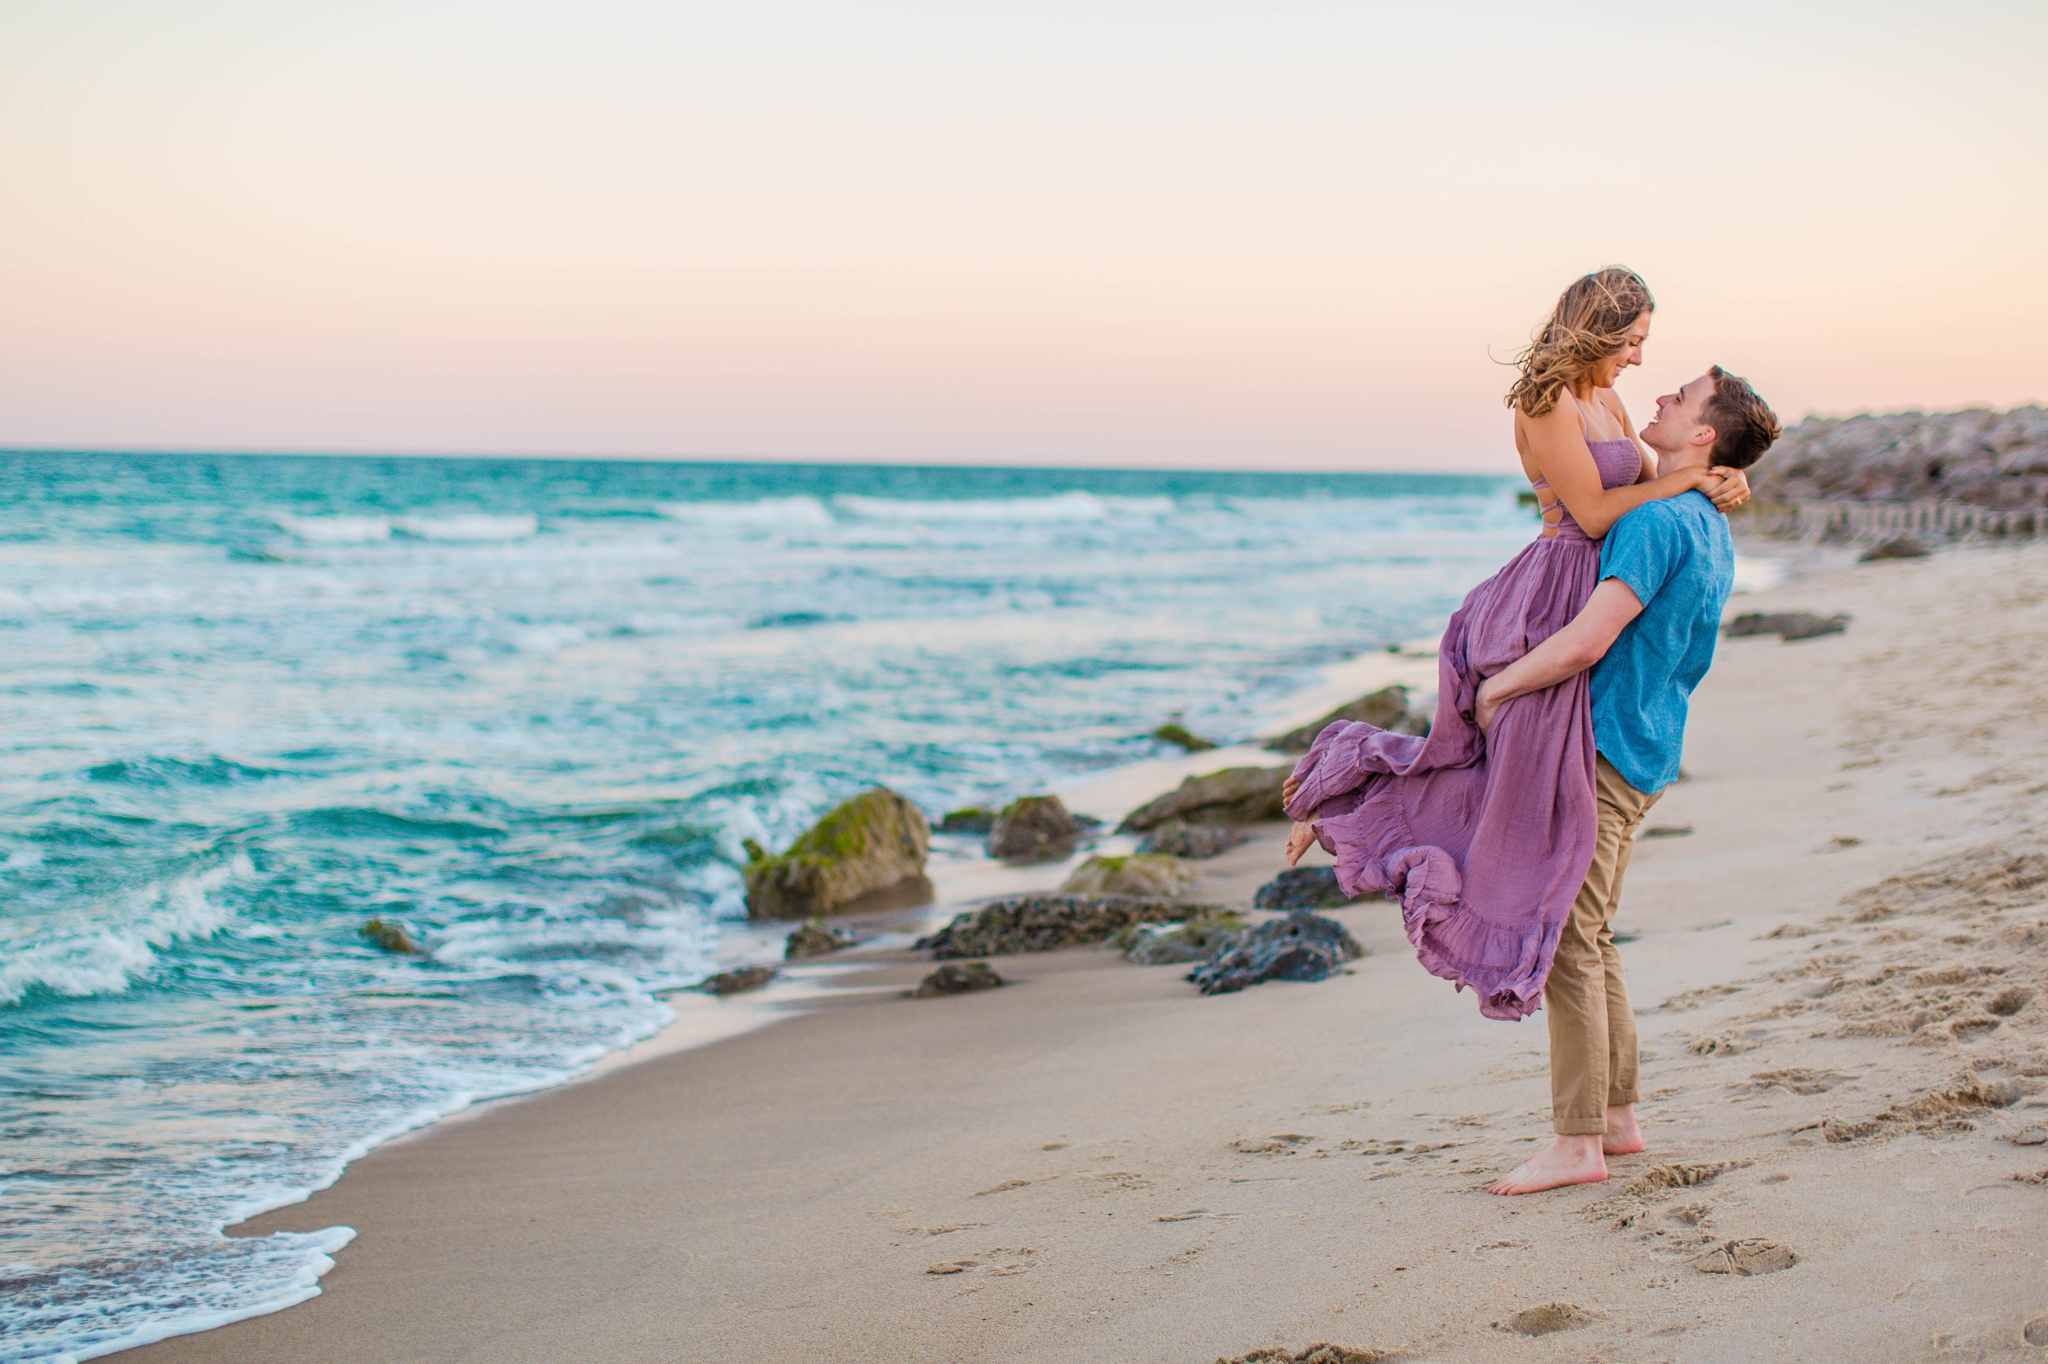 fiance picking up his girl - - Woman is in a flowy pastel maxi dress - candid and unposed golden light session - beach engagement photographer in honolulu, oahu, hawaii - johanna dye photography